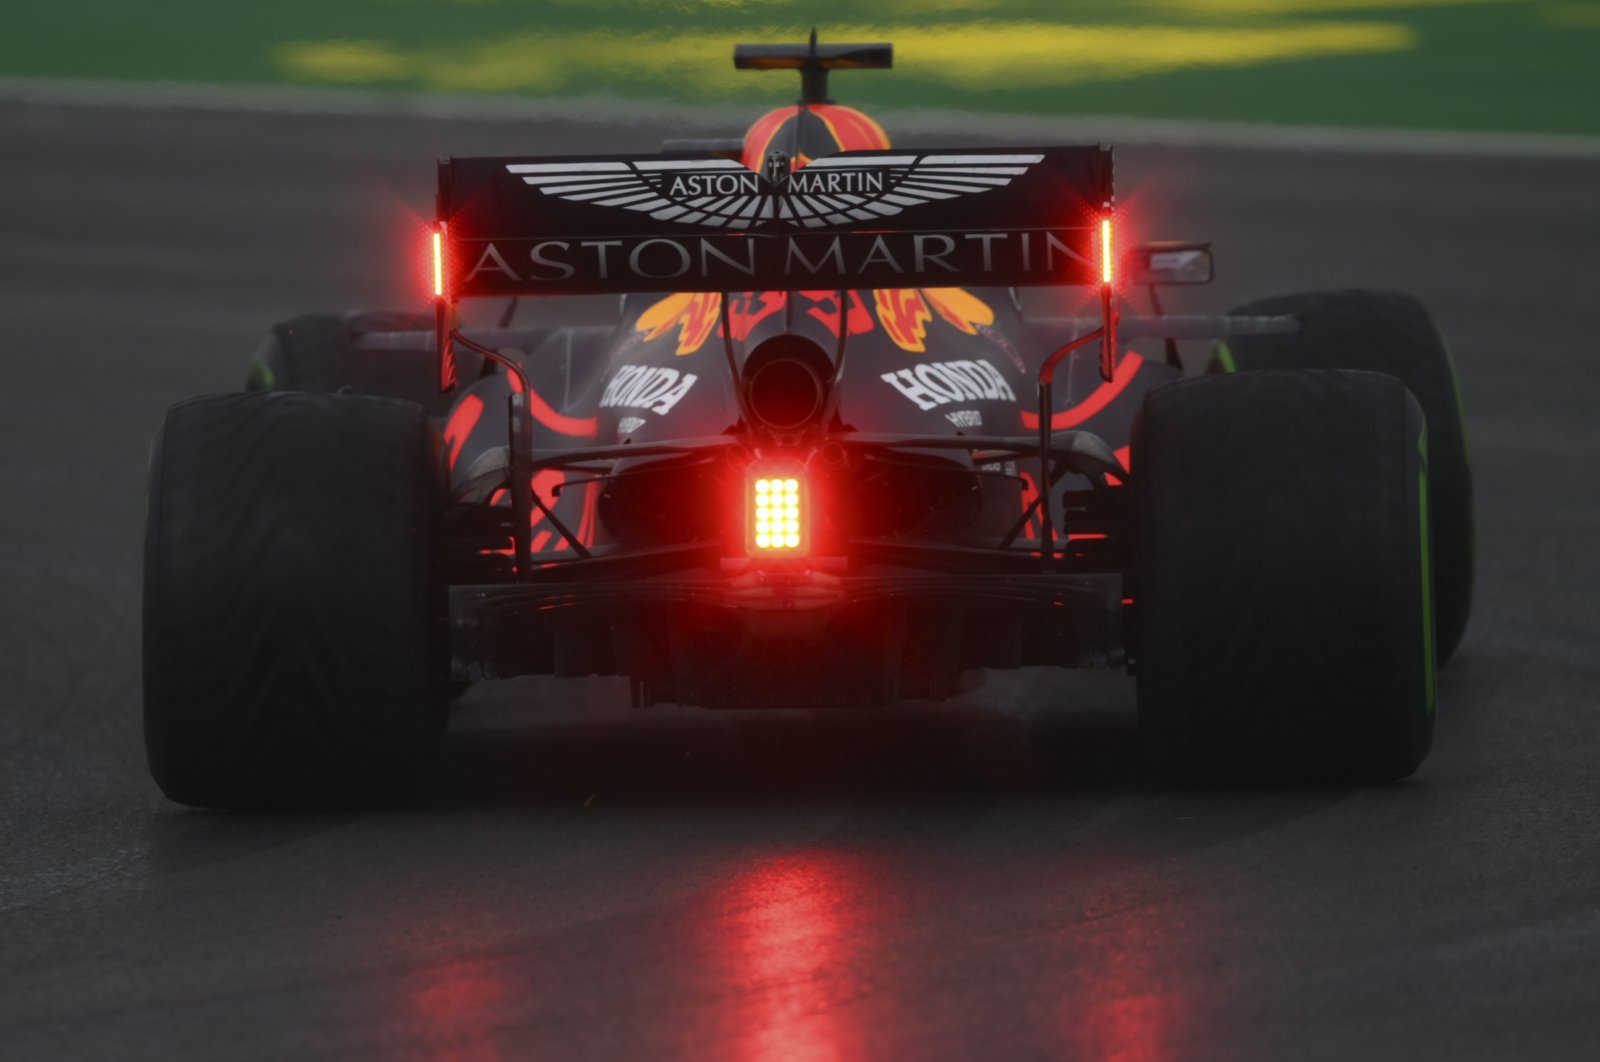 Red Bull driver Max Verstappen of the Netherlands steers his car during the third practice session at the Istanbul Park circuit racetrack in Istanbul, Nov. 14, 2020. (Pool via AP)